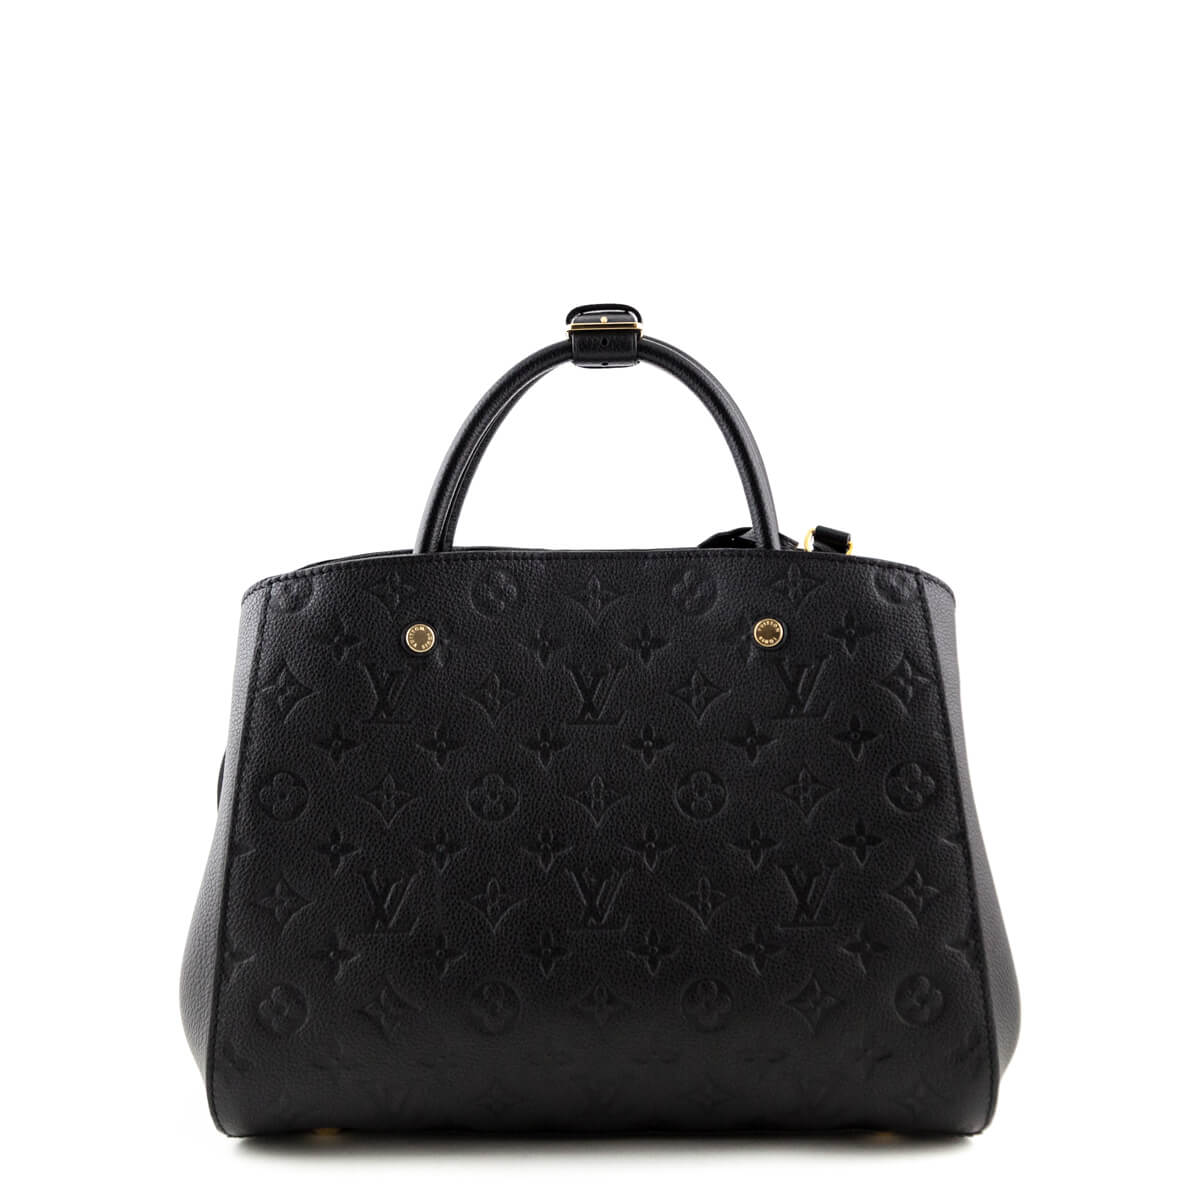 1fd16653c4312 ... Louis Vuitton Black Monogram Empreinte Montaigne MM - LOVE that BAG -  Preowned Authentic Designer Handbags ...